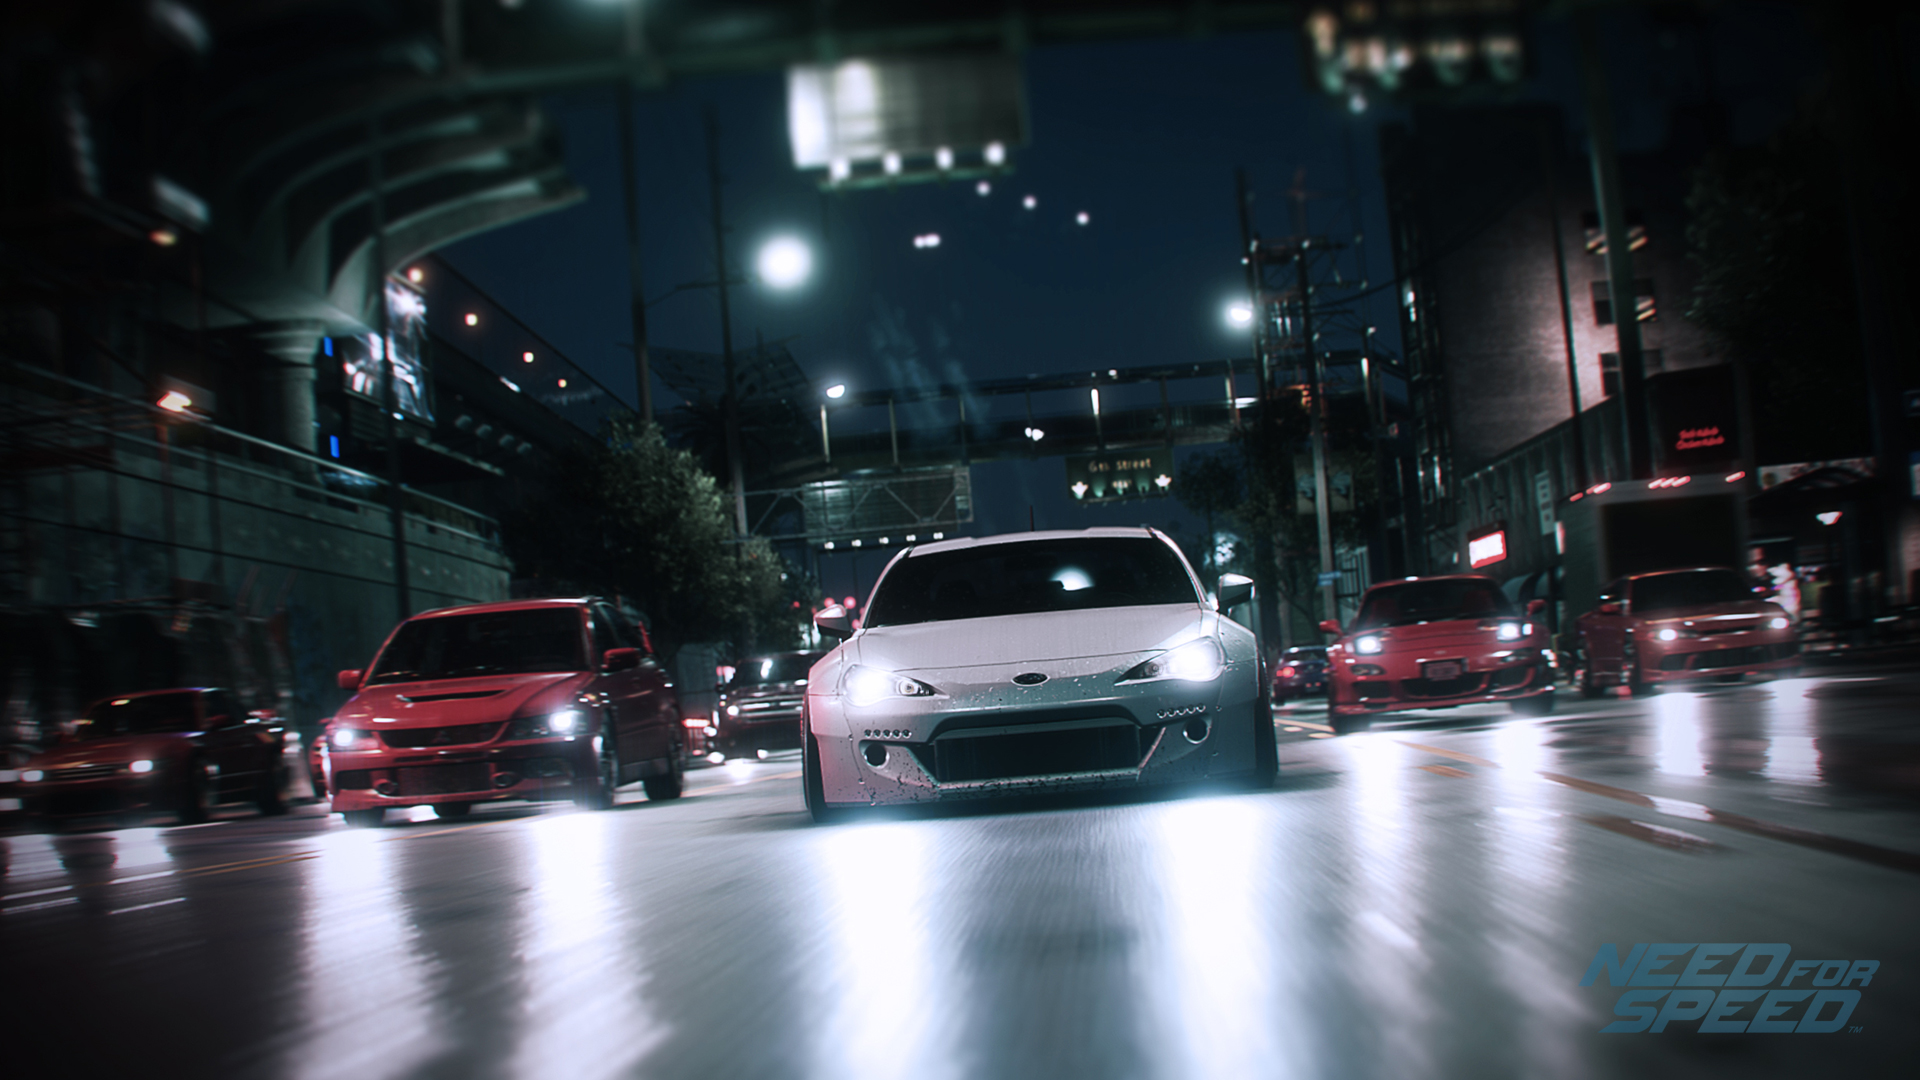 Need for speed 2018 wallpaper